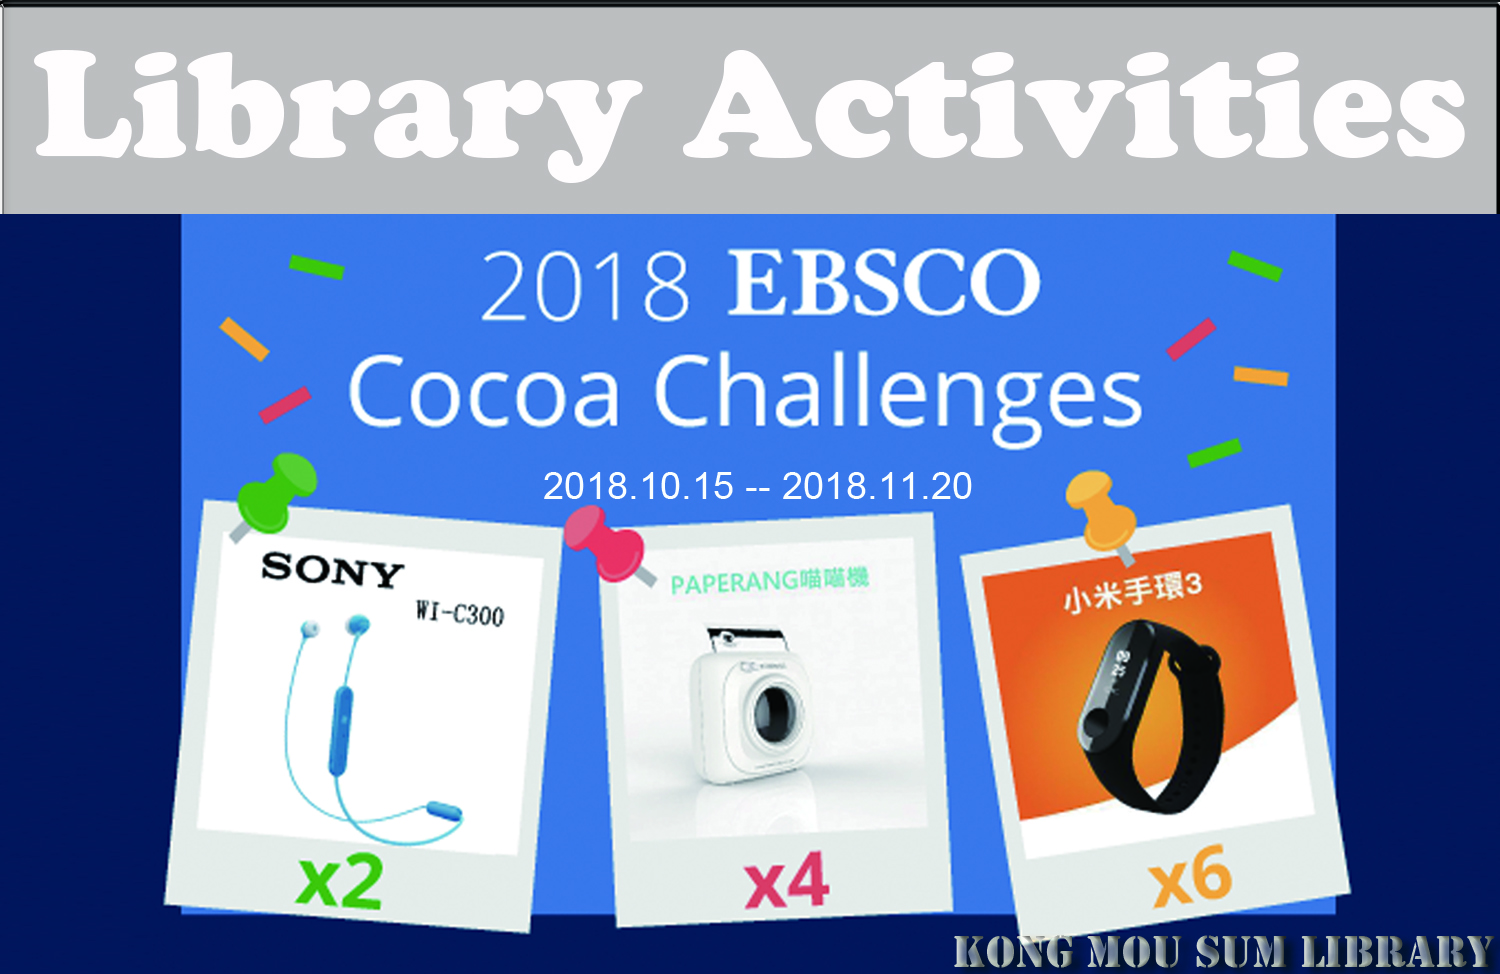 library website picture design-ebsco2018